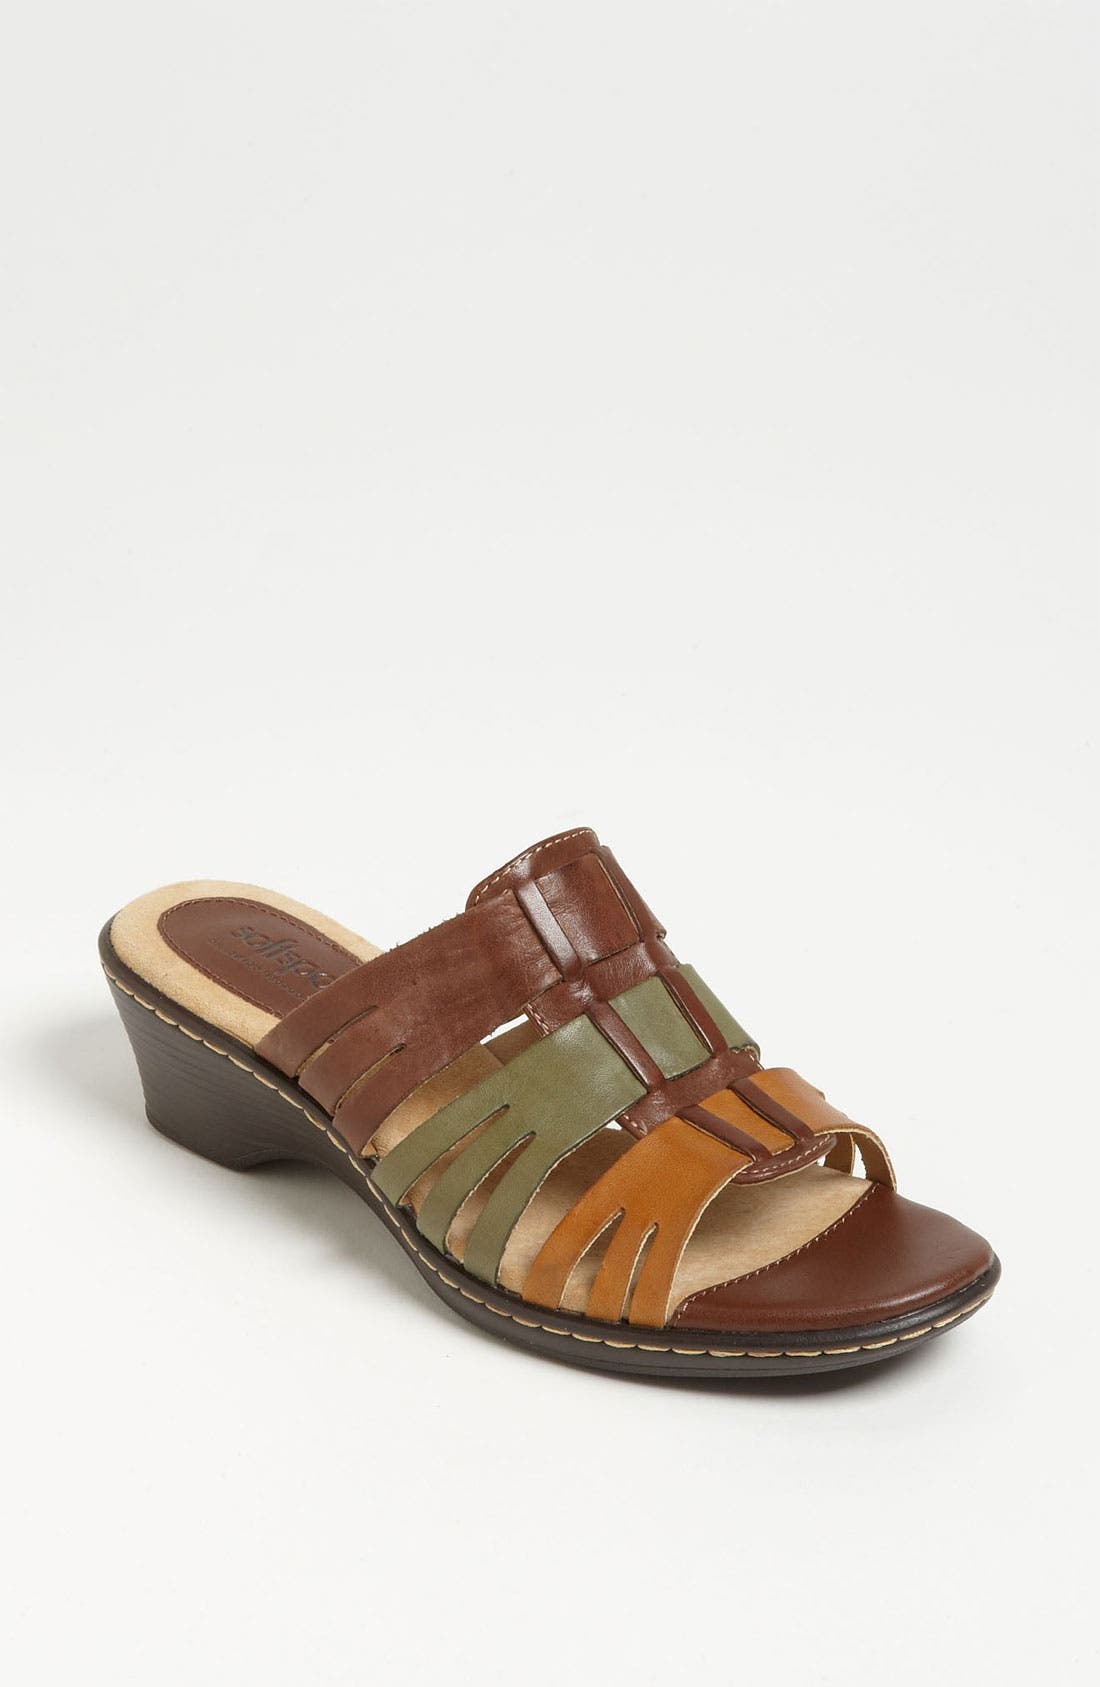 Main Image - Softspots 'Hilary' Sandal